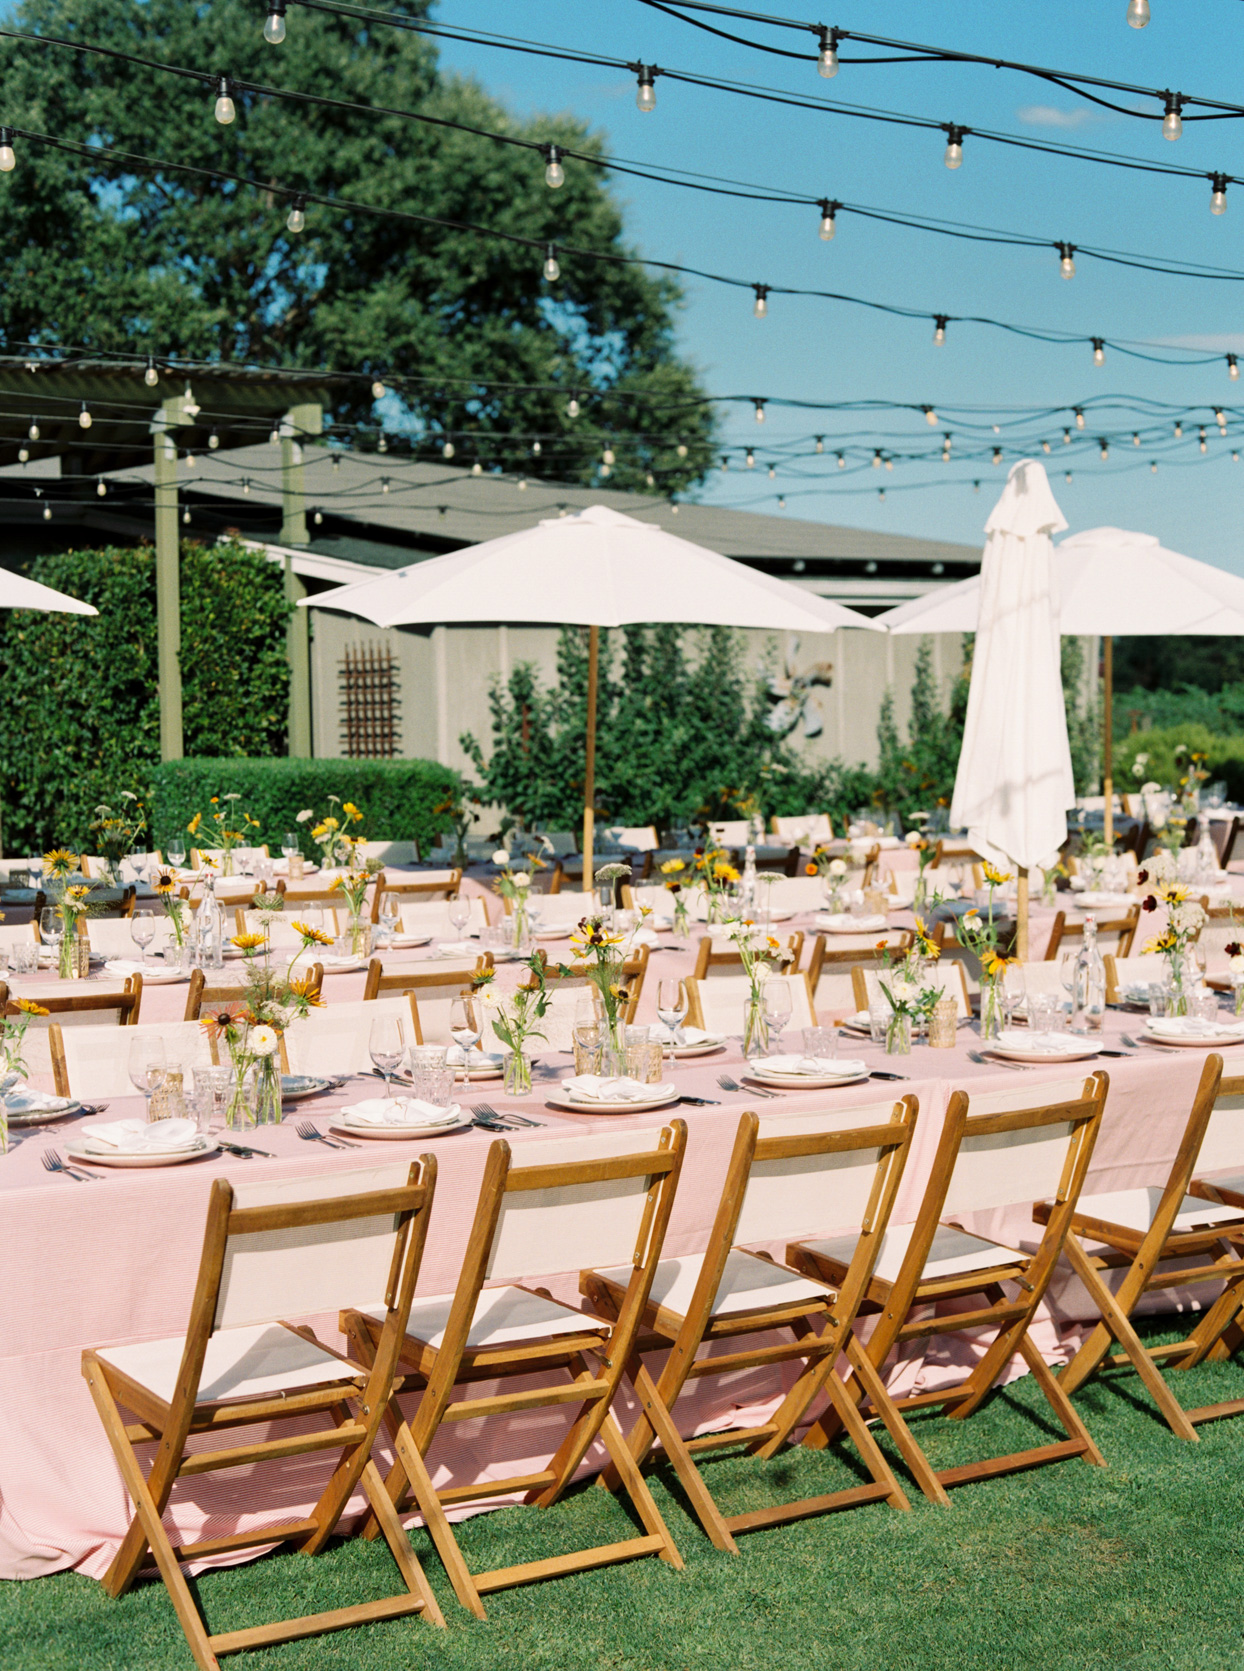 welcome party tables set up on lawn with pink cloths and yellow flowers